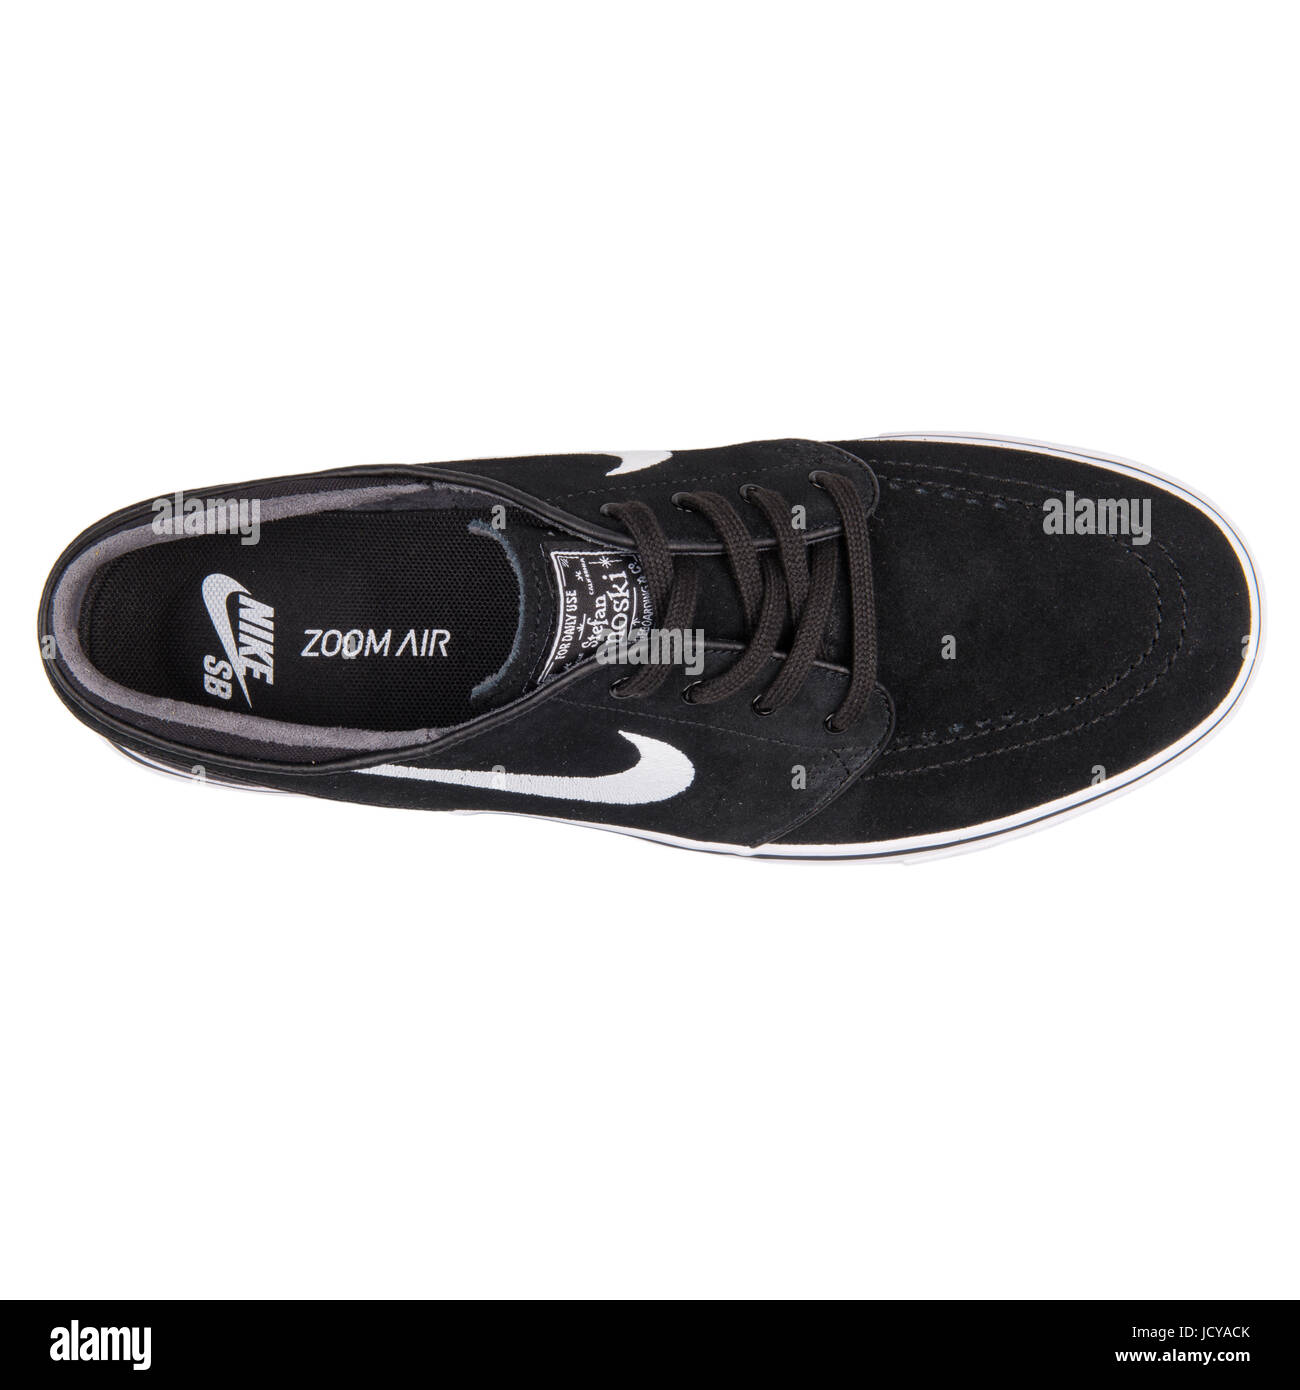 separation shoes 49c36 b4cb9 Nike Zoom Stefan Janoski Black and White Men s Skateboarding Shoes - 333824- 026